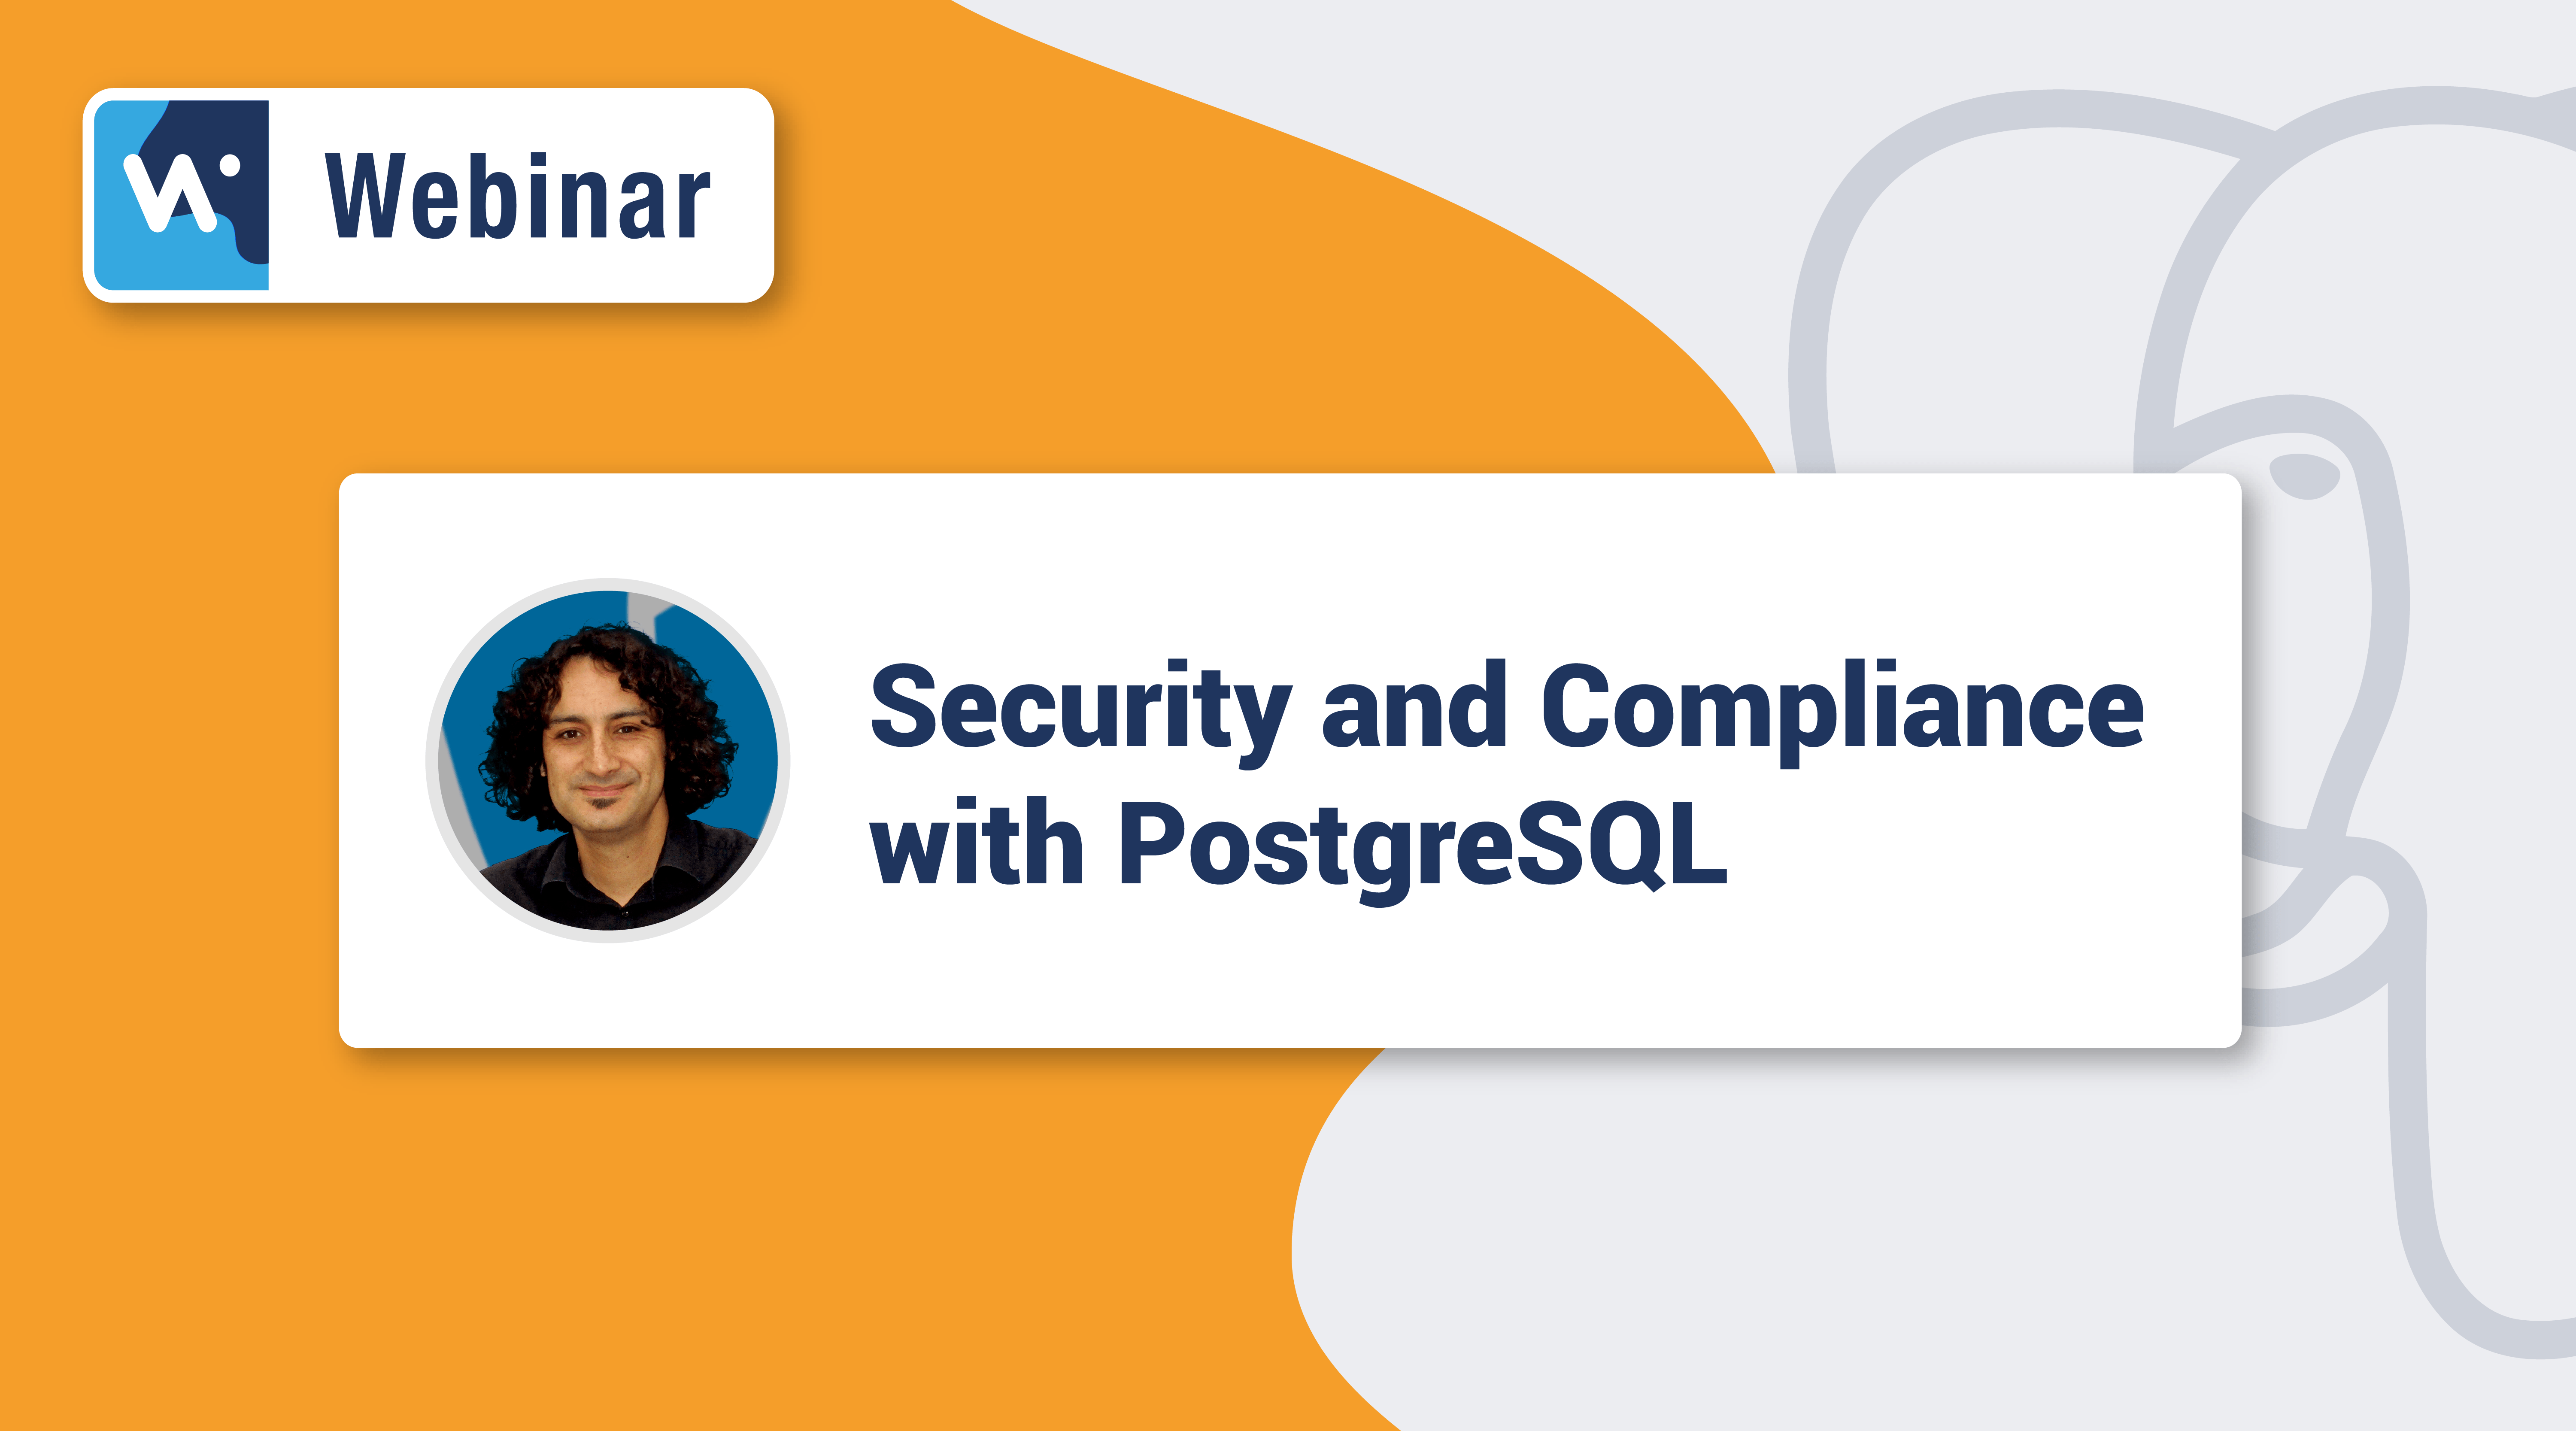 Security and Compliance with PostgreSQL [Webinar]